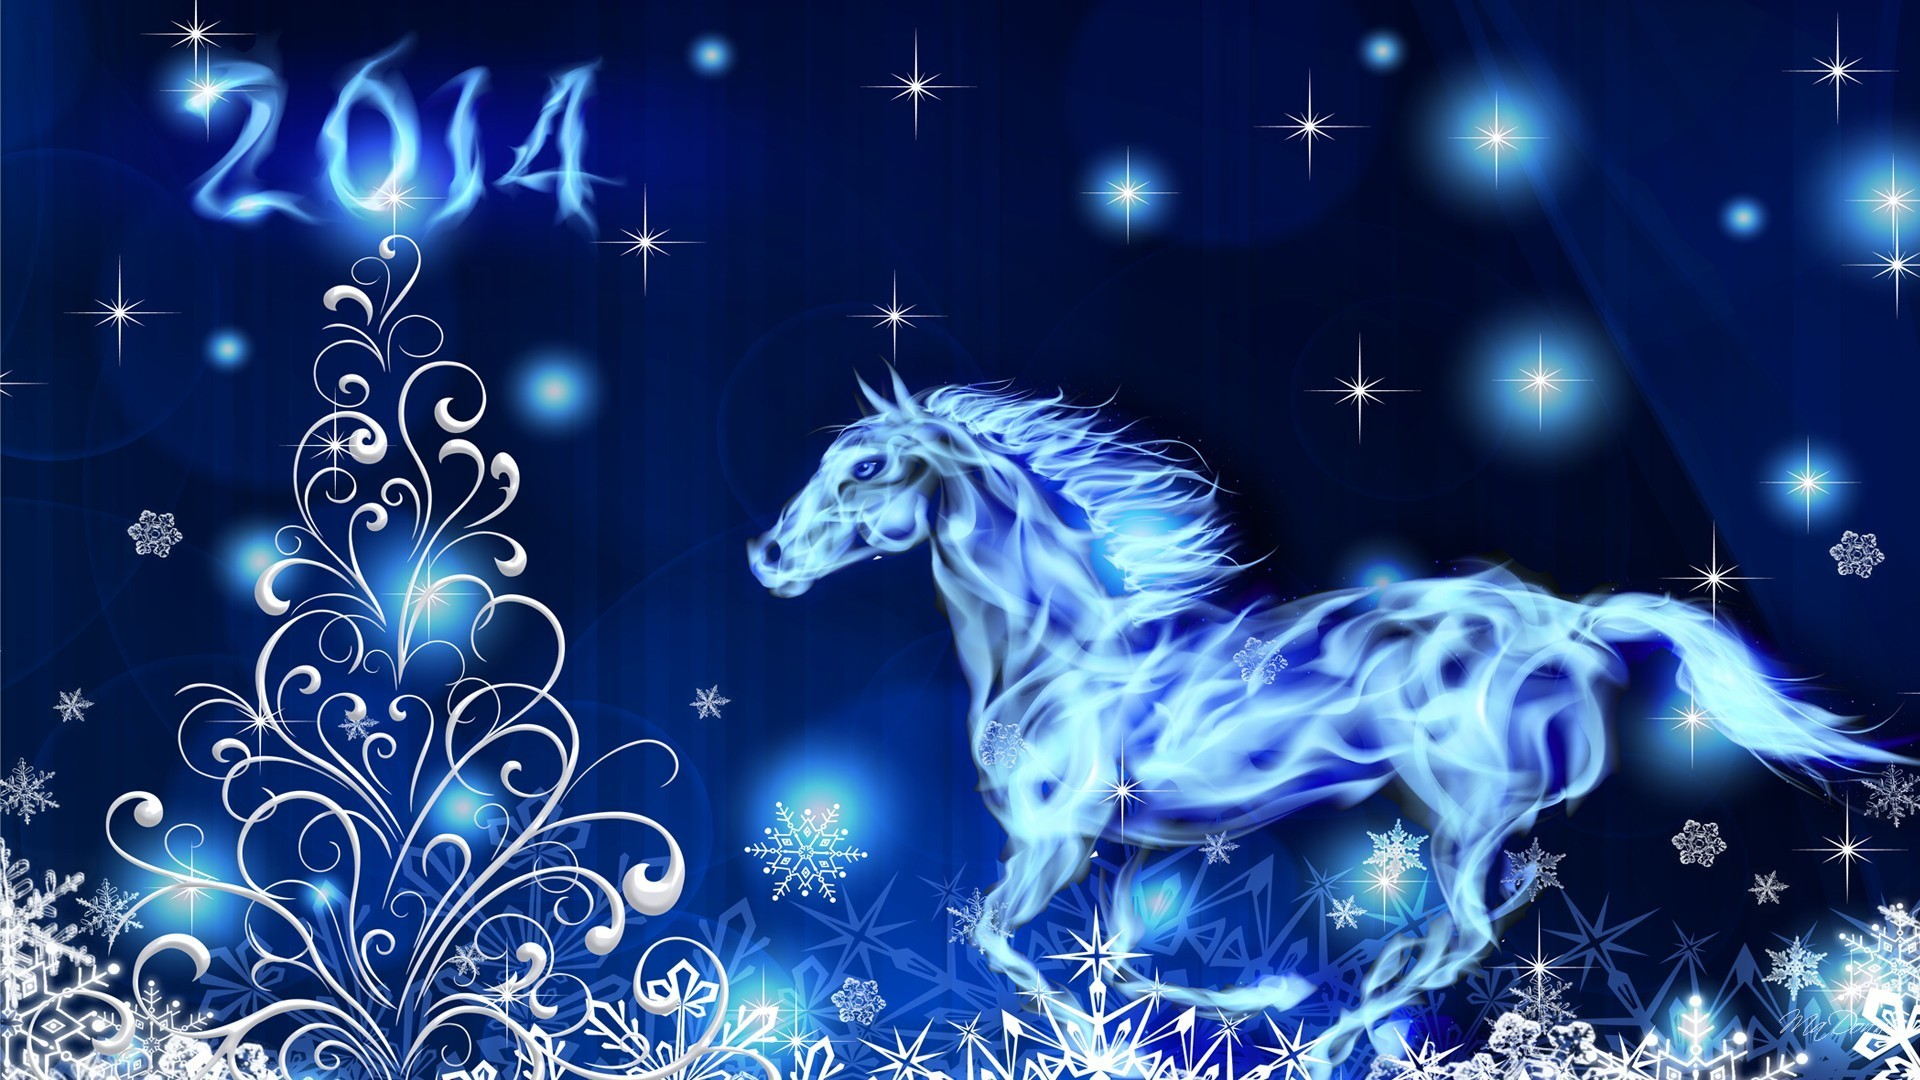 Res: 1920x1080, Blue Horse New Year Christmas Tree Years Glow Stars Snowflakes Lights  Flaming Holiday Wallpaper Beautiful Winter